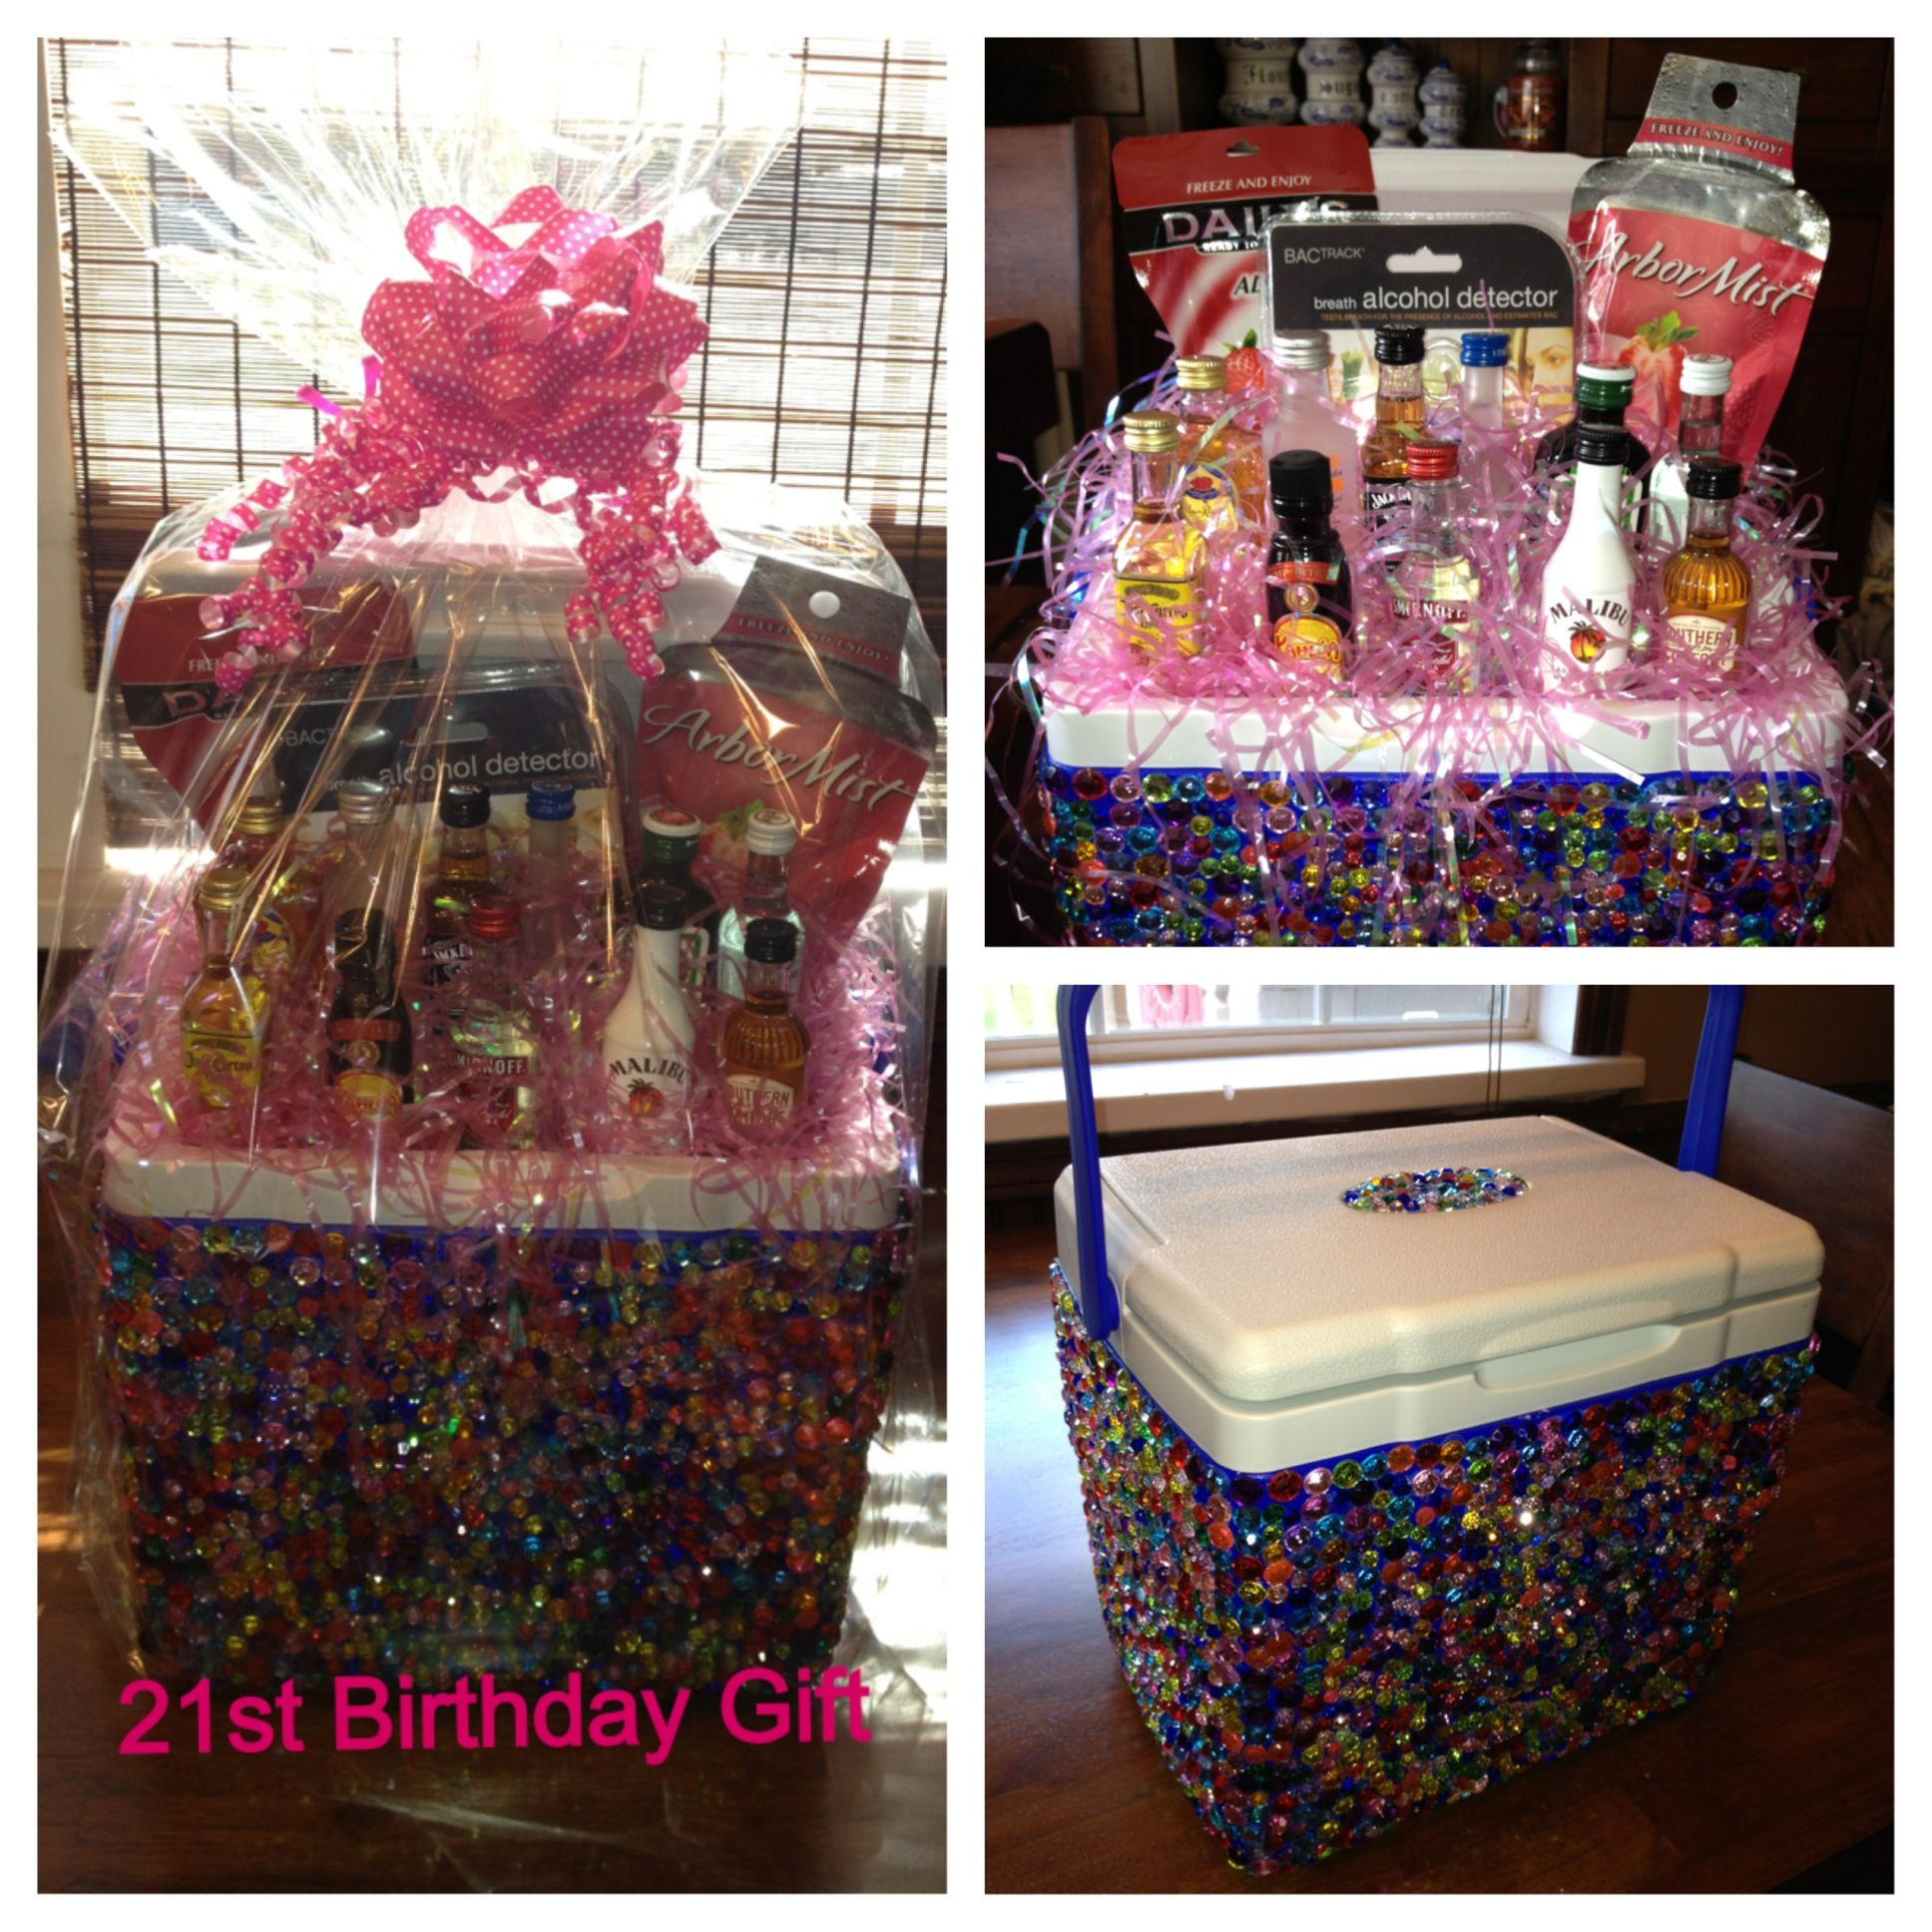 Made This For My Sister Who Is Turning 21 Bedazzled Cooler With A Alcohol Detecter And Little Liquor Bottles Enjoy